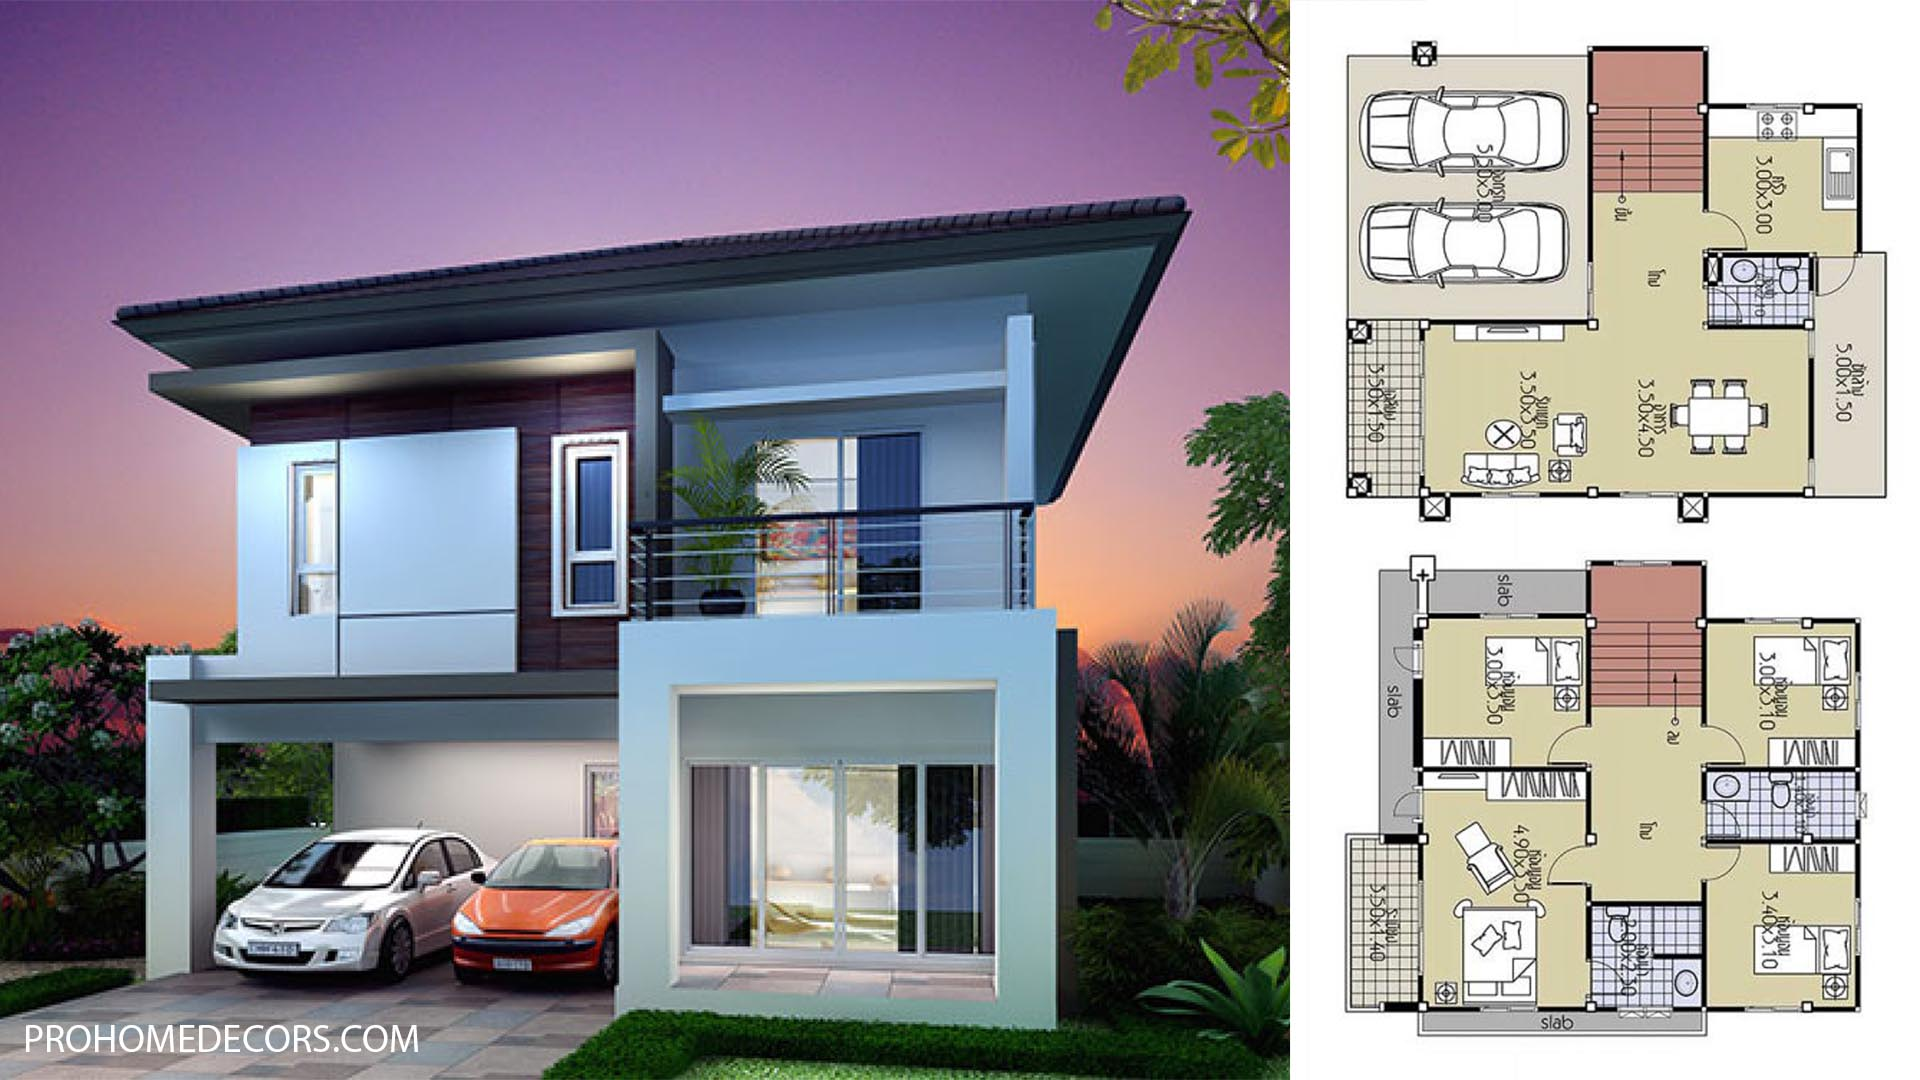 House Design Plans 8×10.5 with 4 Bedrooms